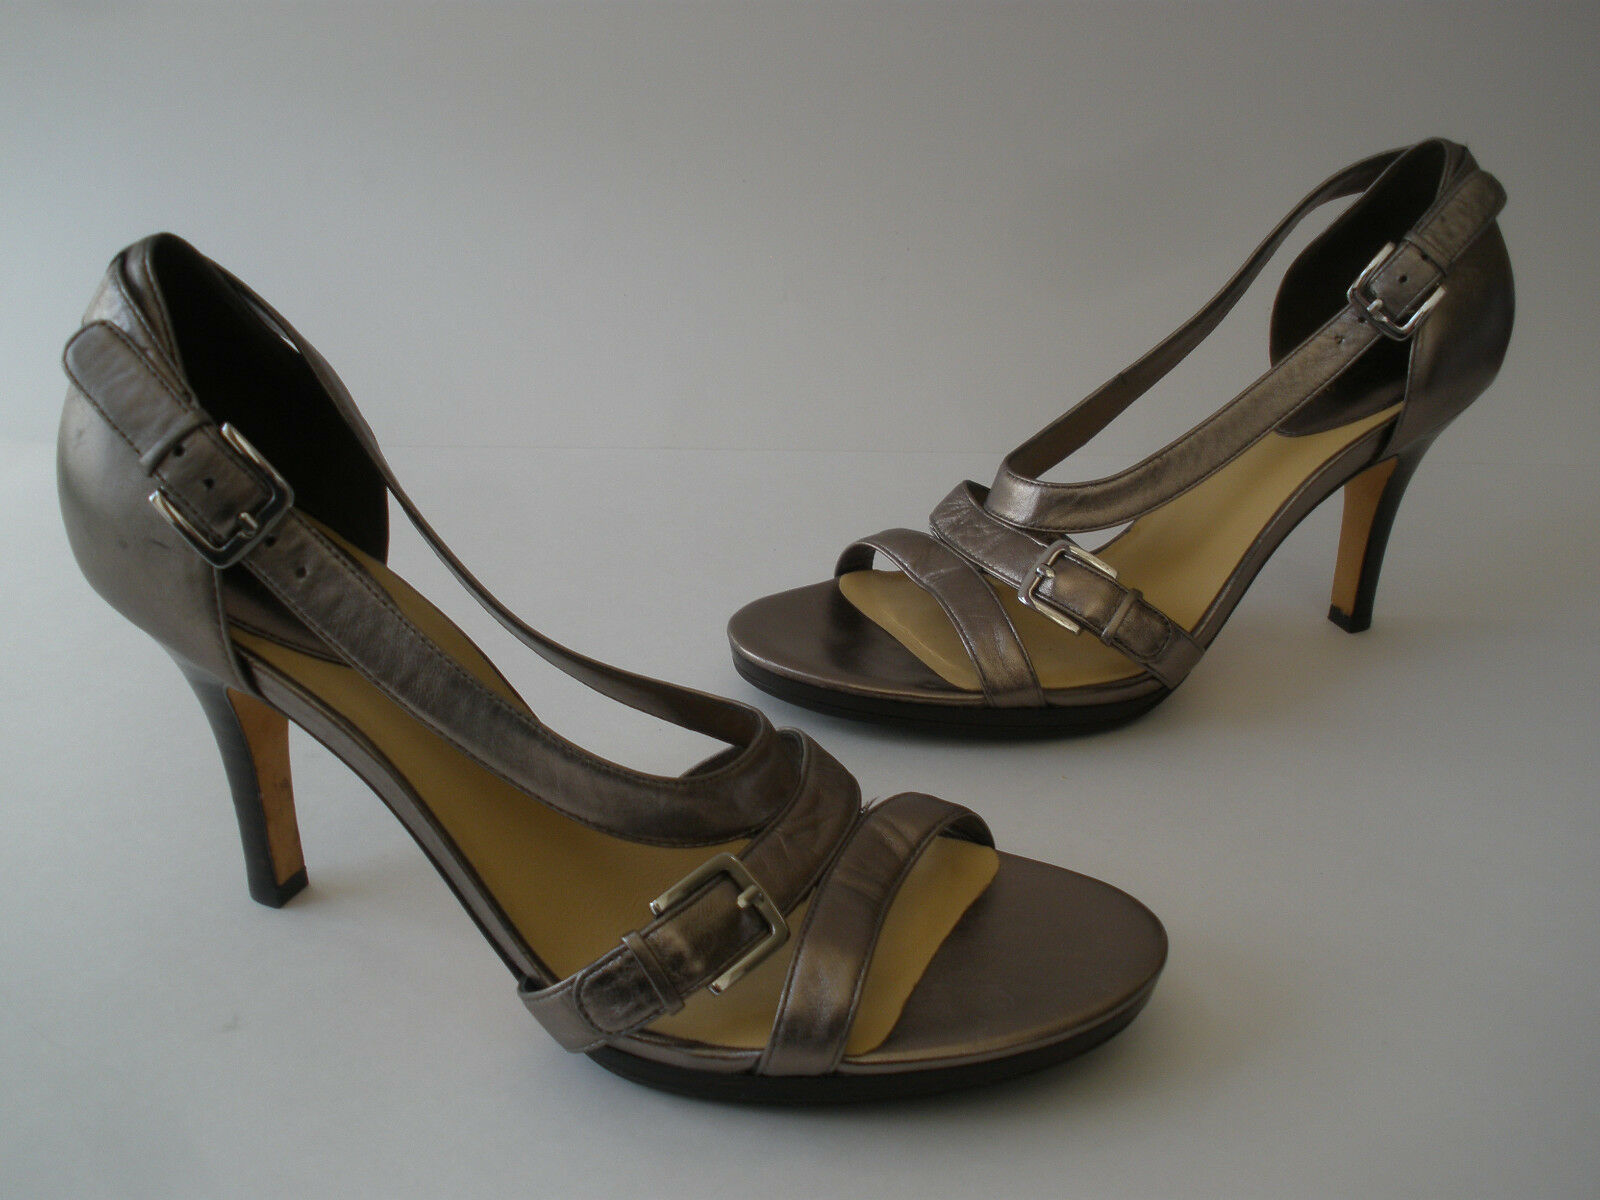 COLE HAAN PEWTER METALLIC 10 LEATHER 3 1/2